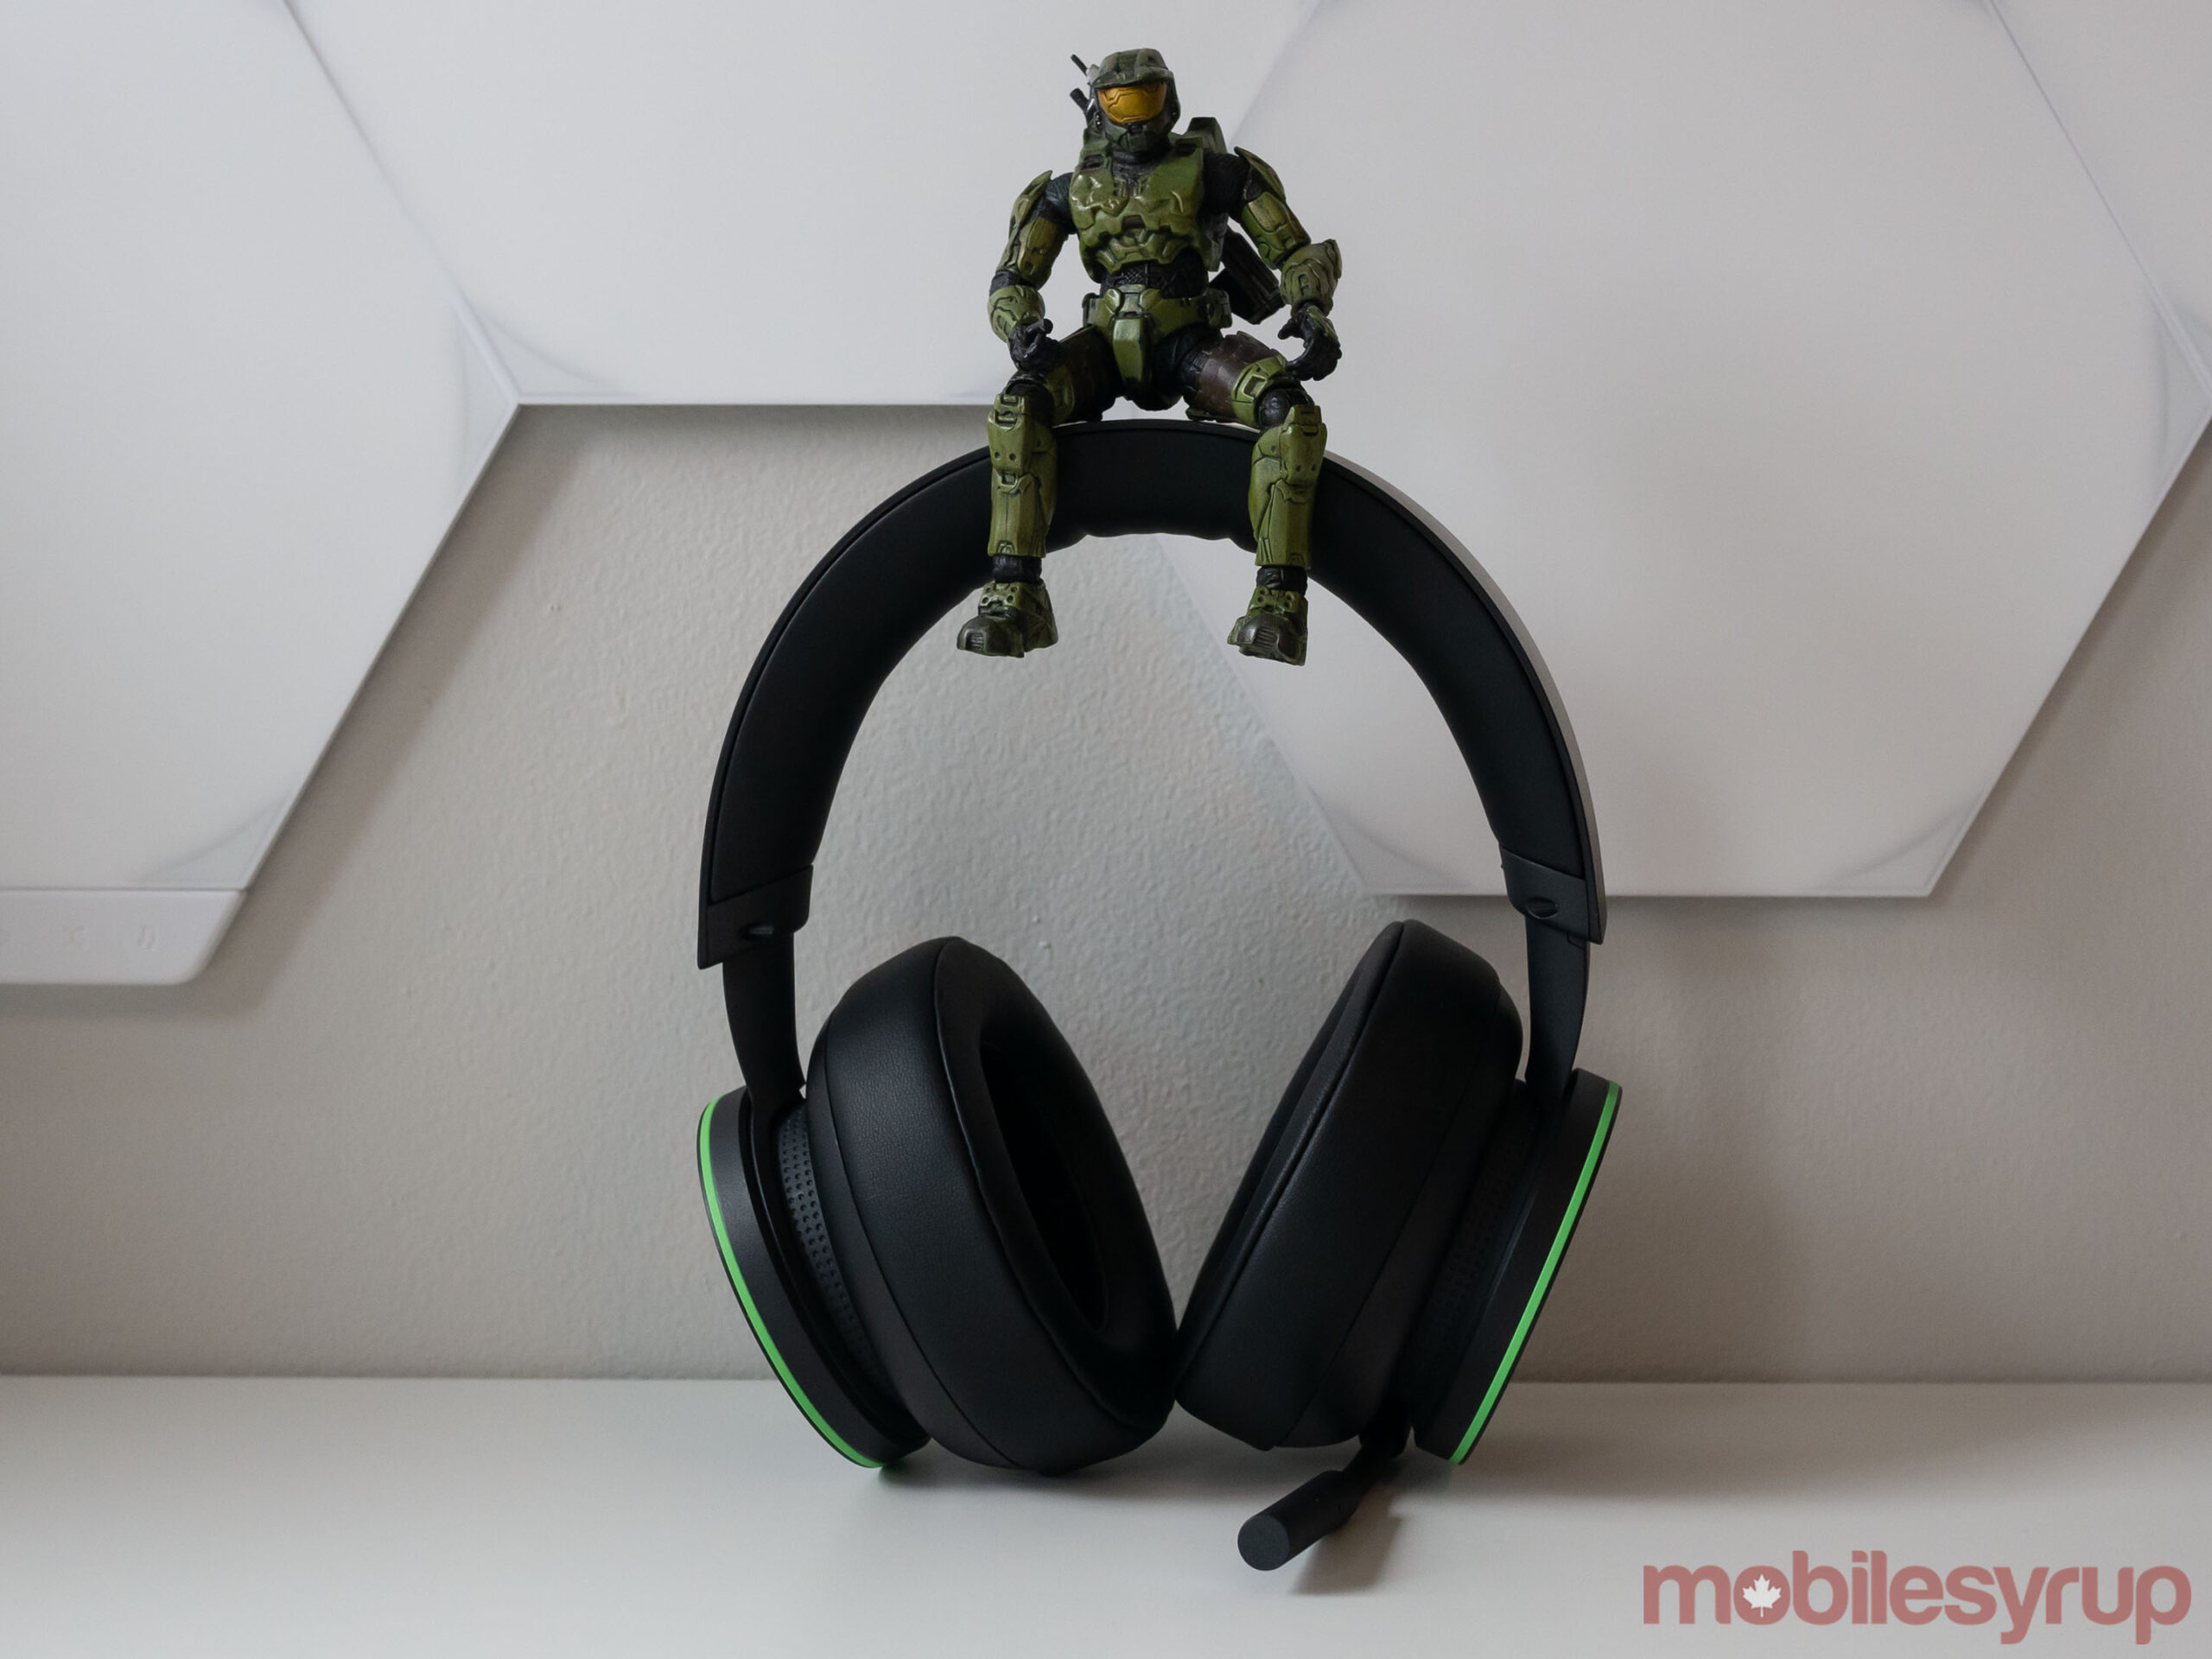 Xbox Wireless Headset with the Master Chief sitting on it